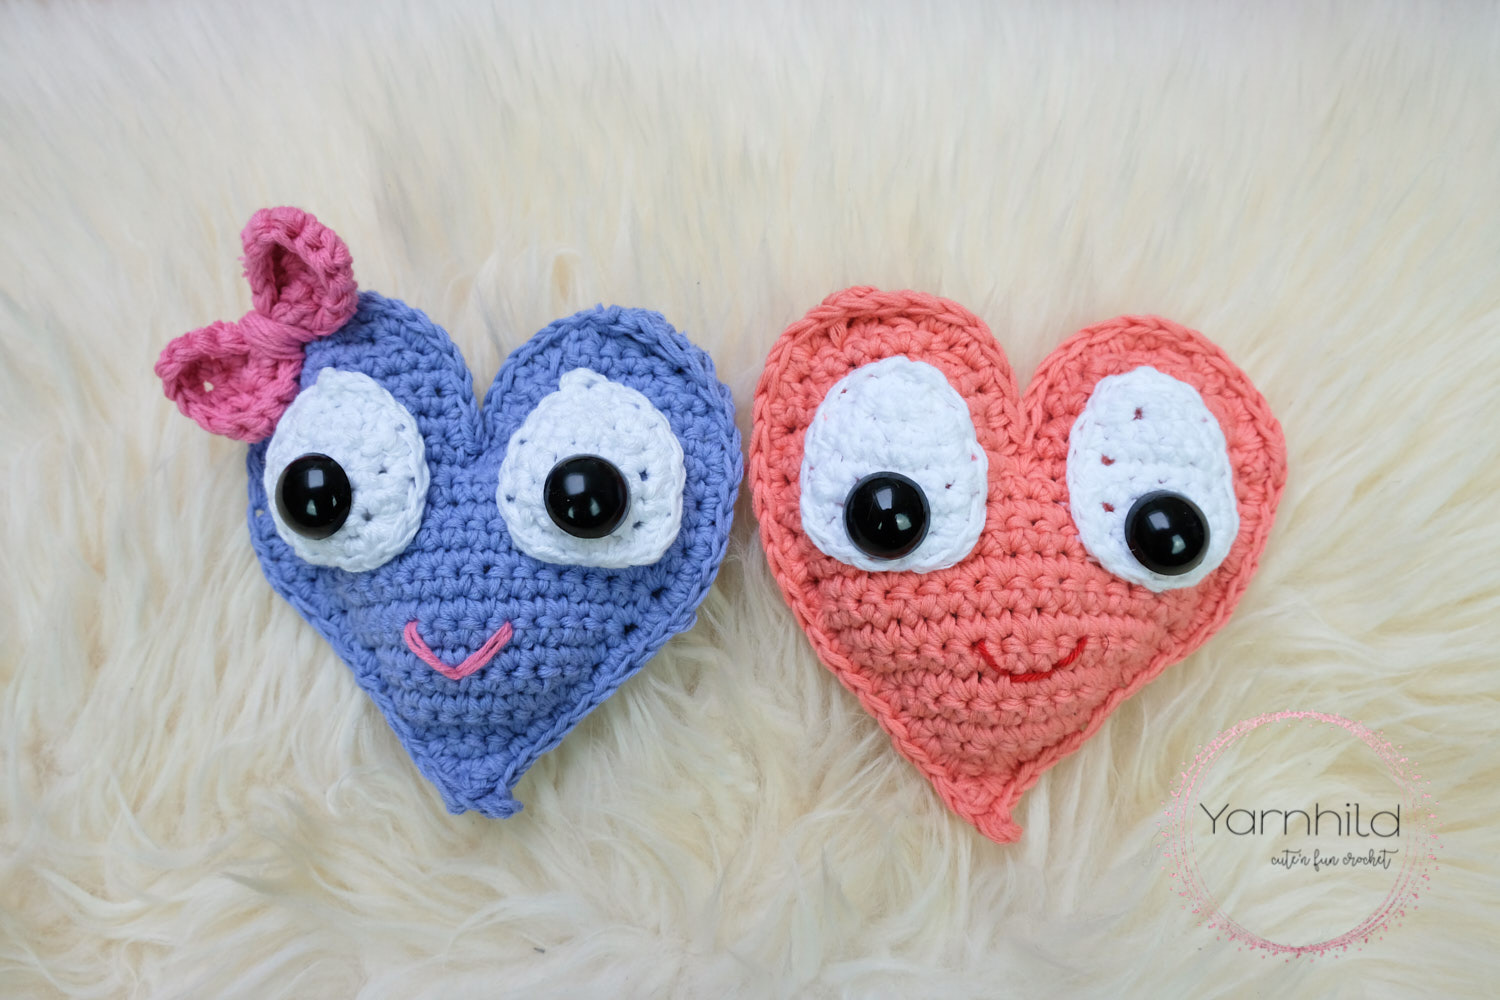 Crochet Heart For Valentines Day Crochet Ragdoll Heart By Yarnhild